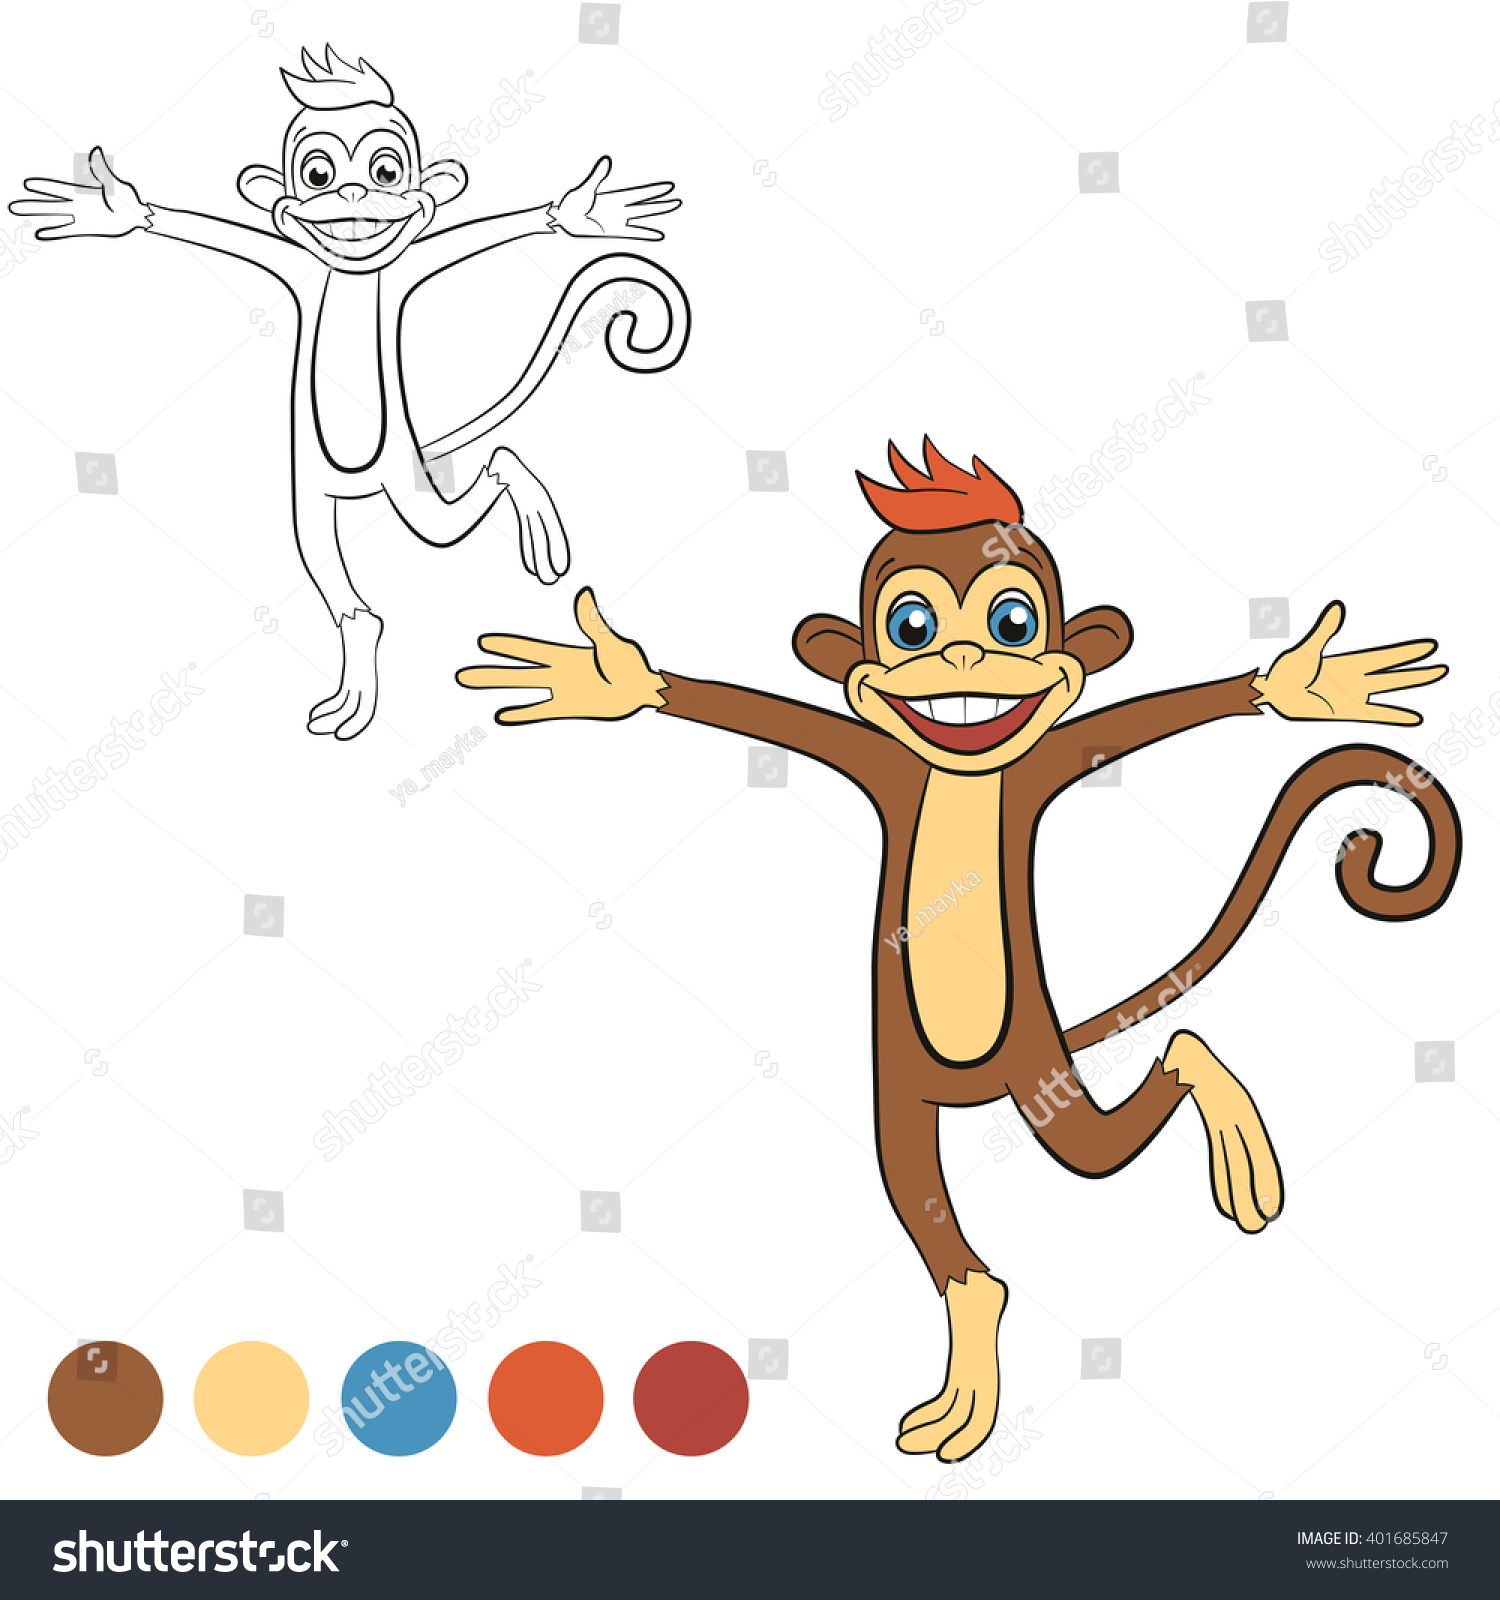 coloring page color me monkey little stock vector 401685847